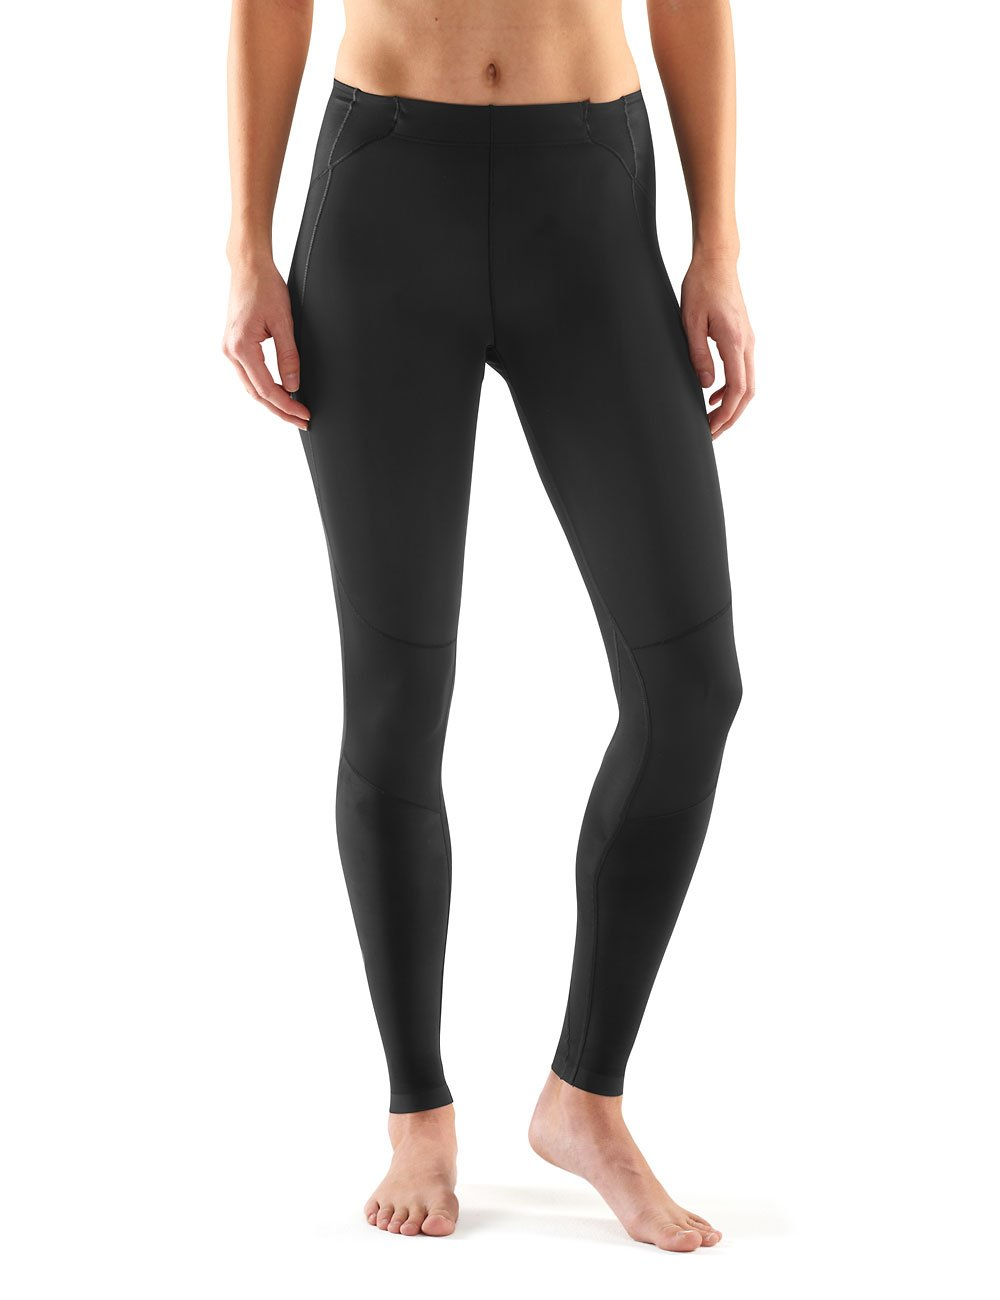 Skins Women's A400Compression Long Tights, Skyscraper Black, Small